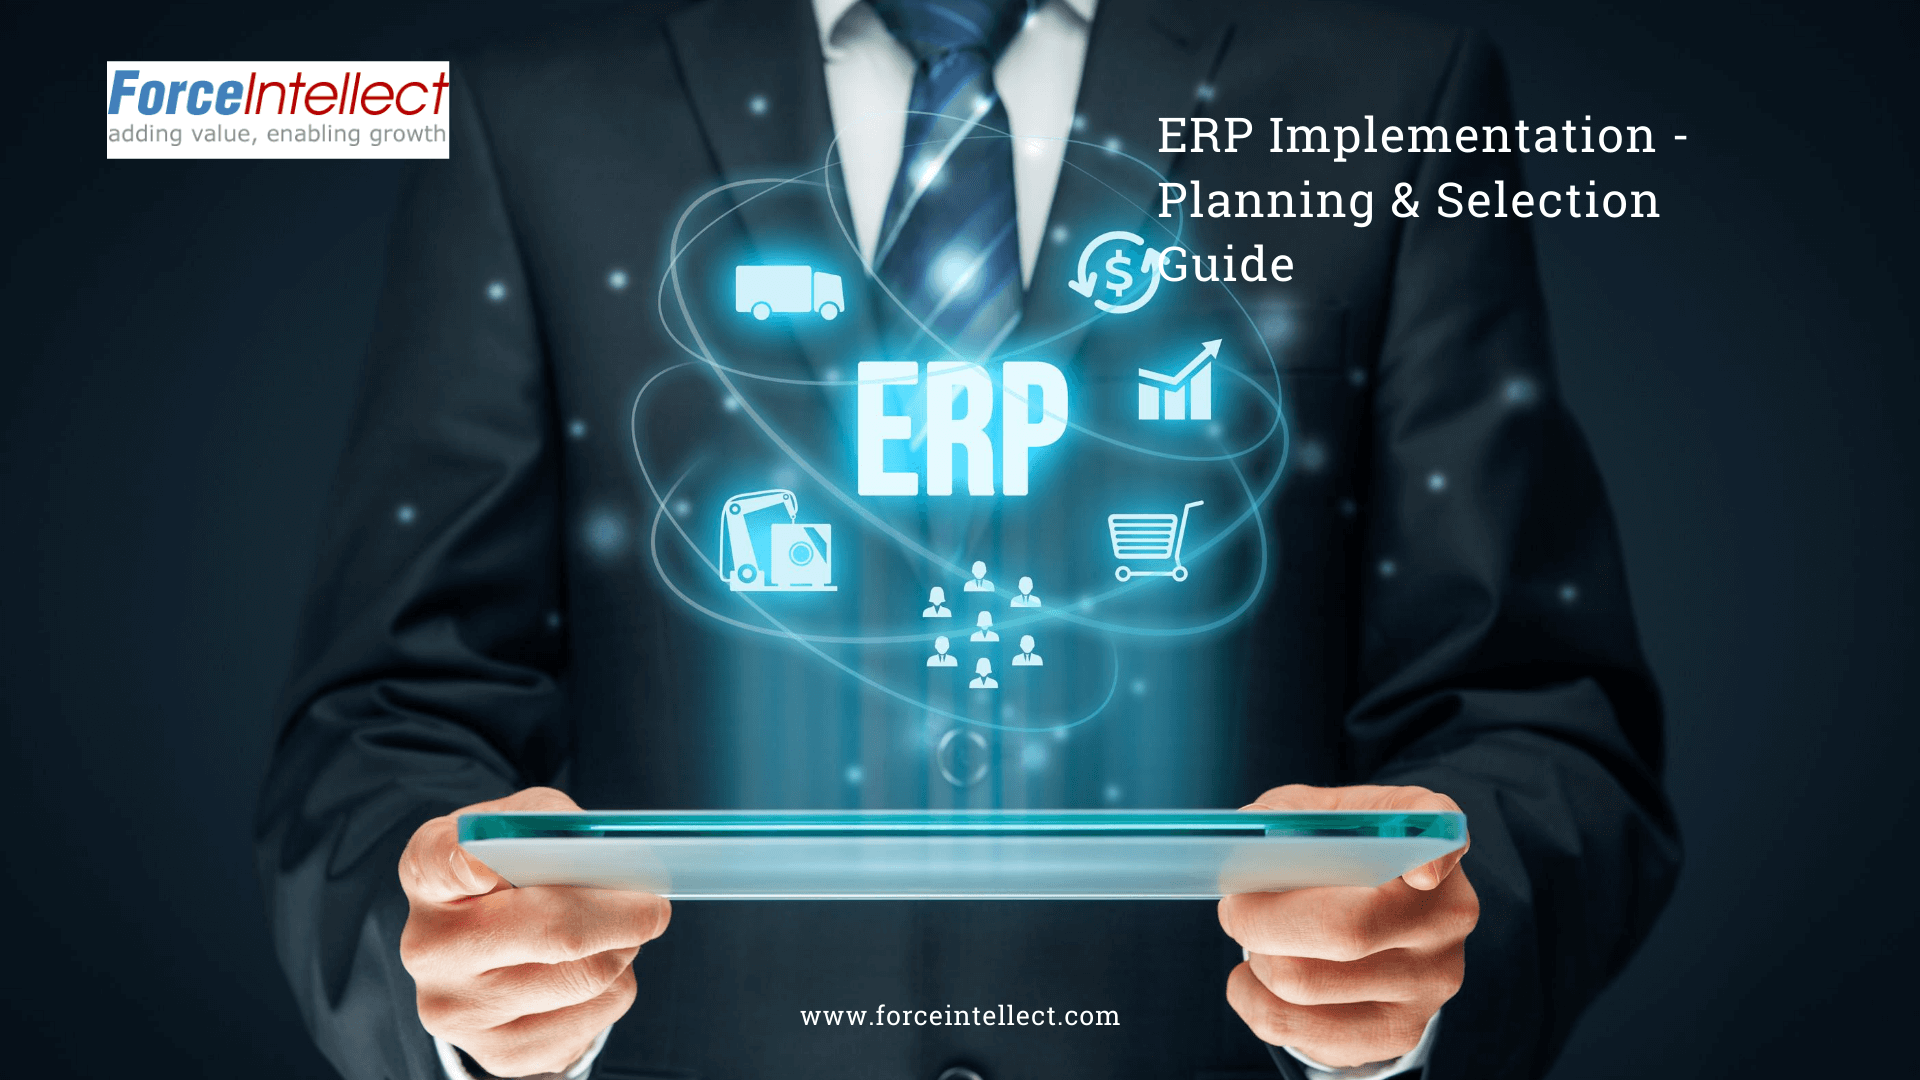 ERP Planning & Selection